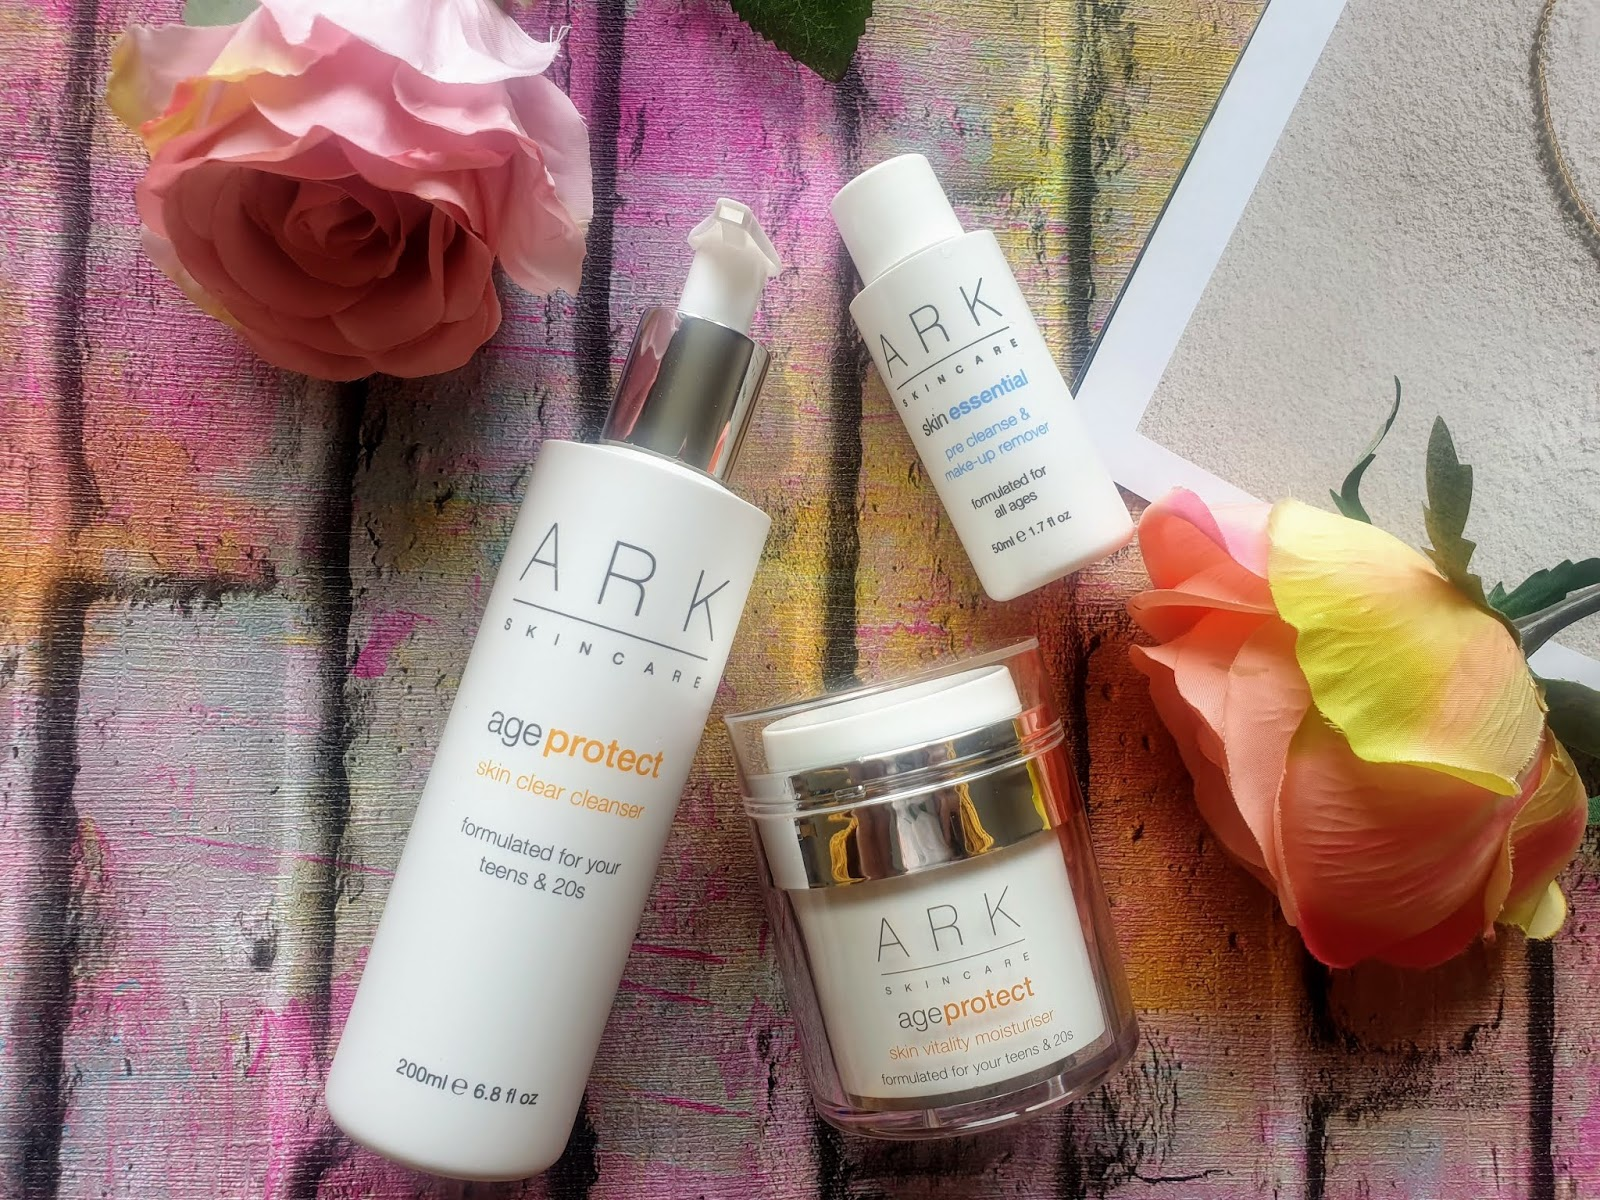 An Introduction to a Pro-Age, Cruelty free and British Brand Ark Skincare